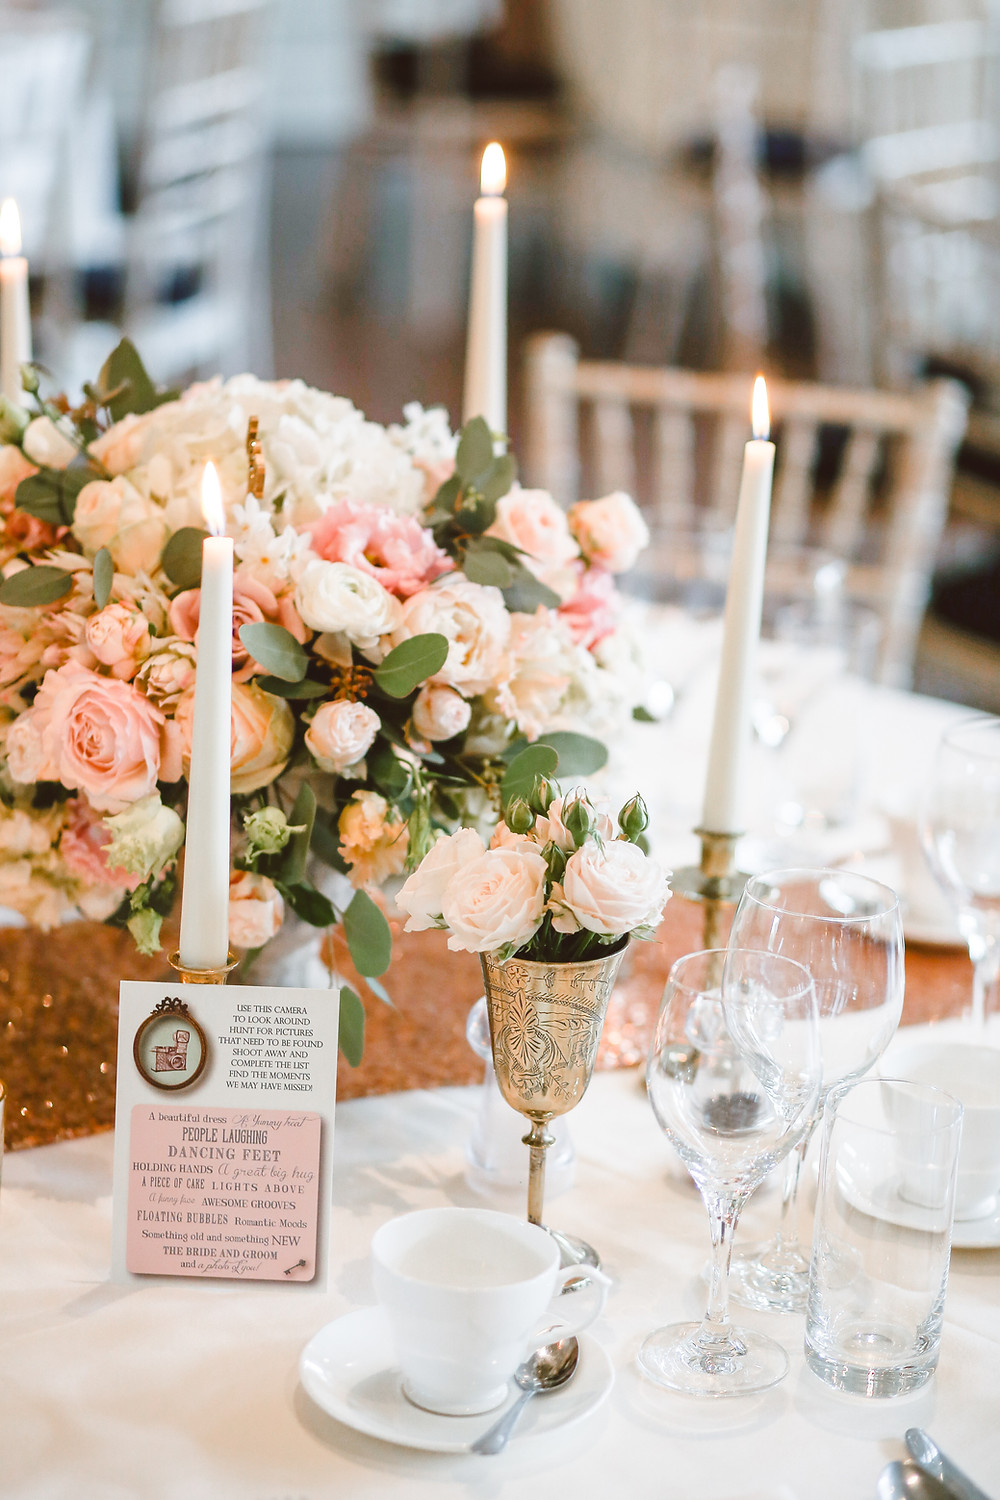 Wedding table settings, planning your wedding